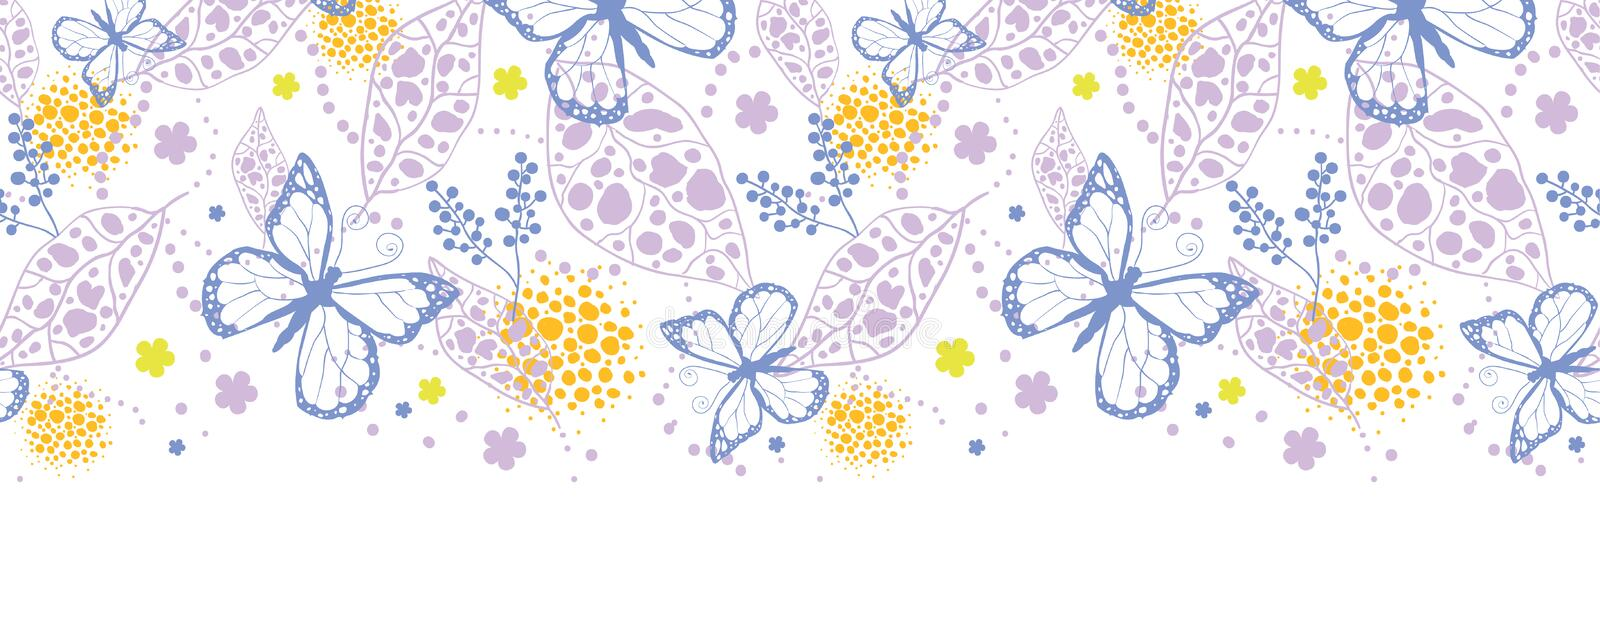 Butterfly garden horizontal seamless pattern royalty free illustration